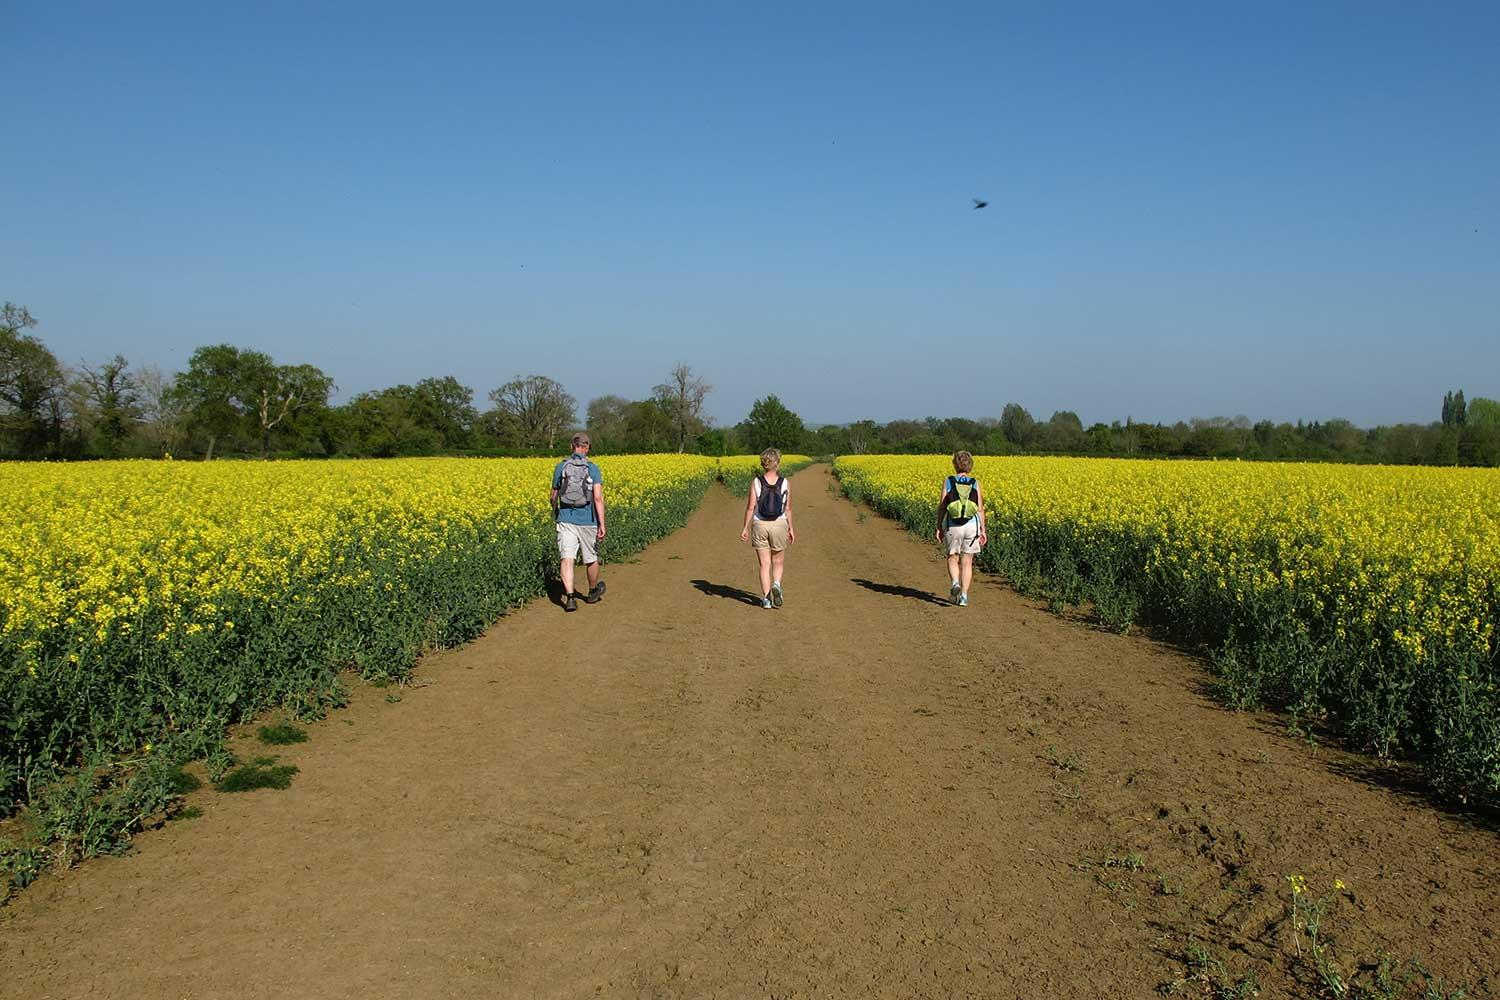 Walking through the Rapeseed fields